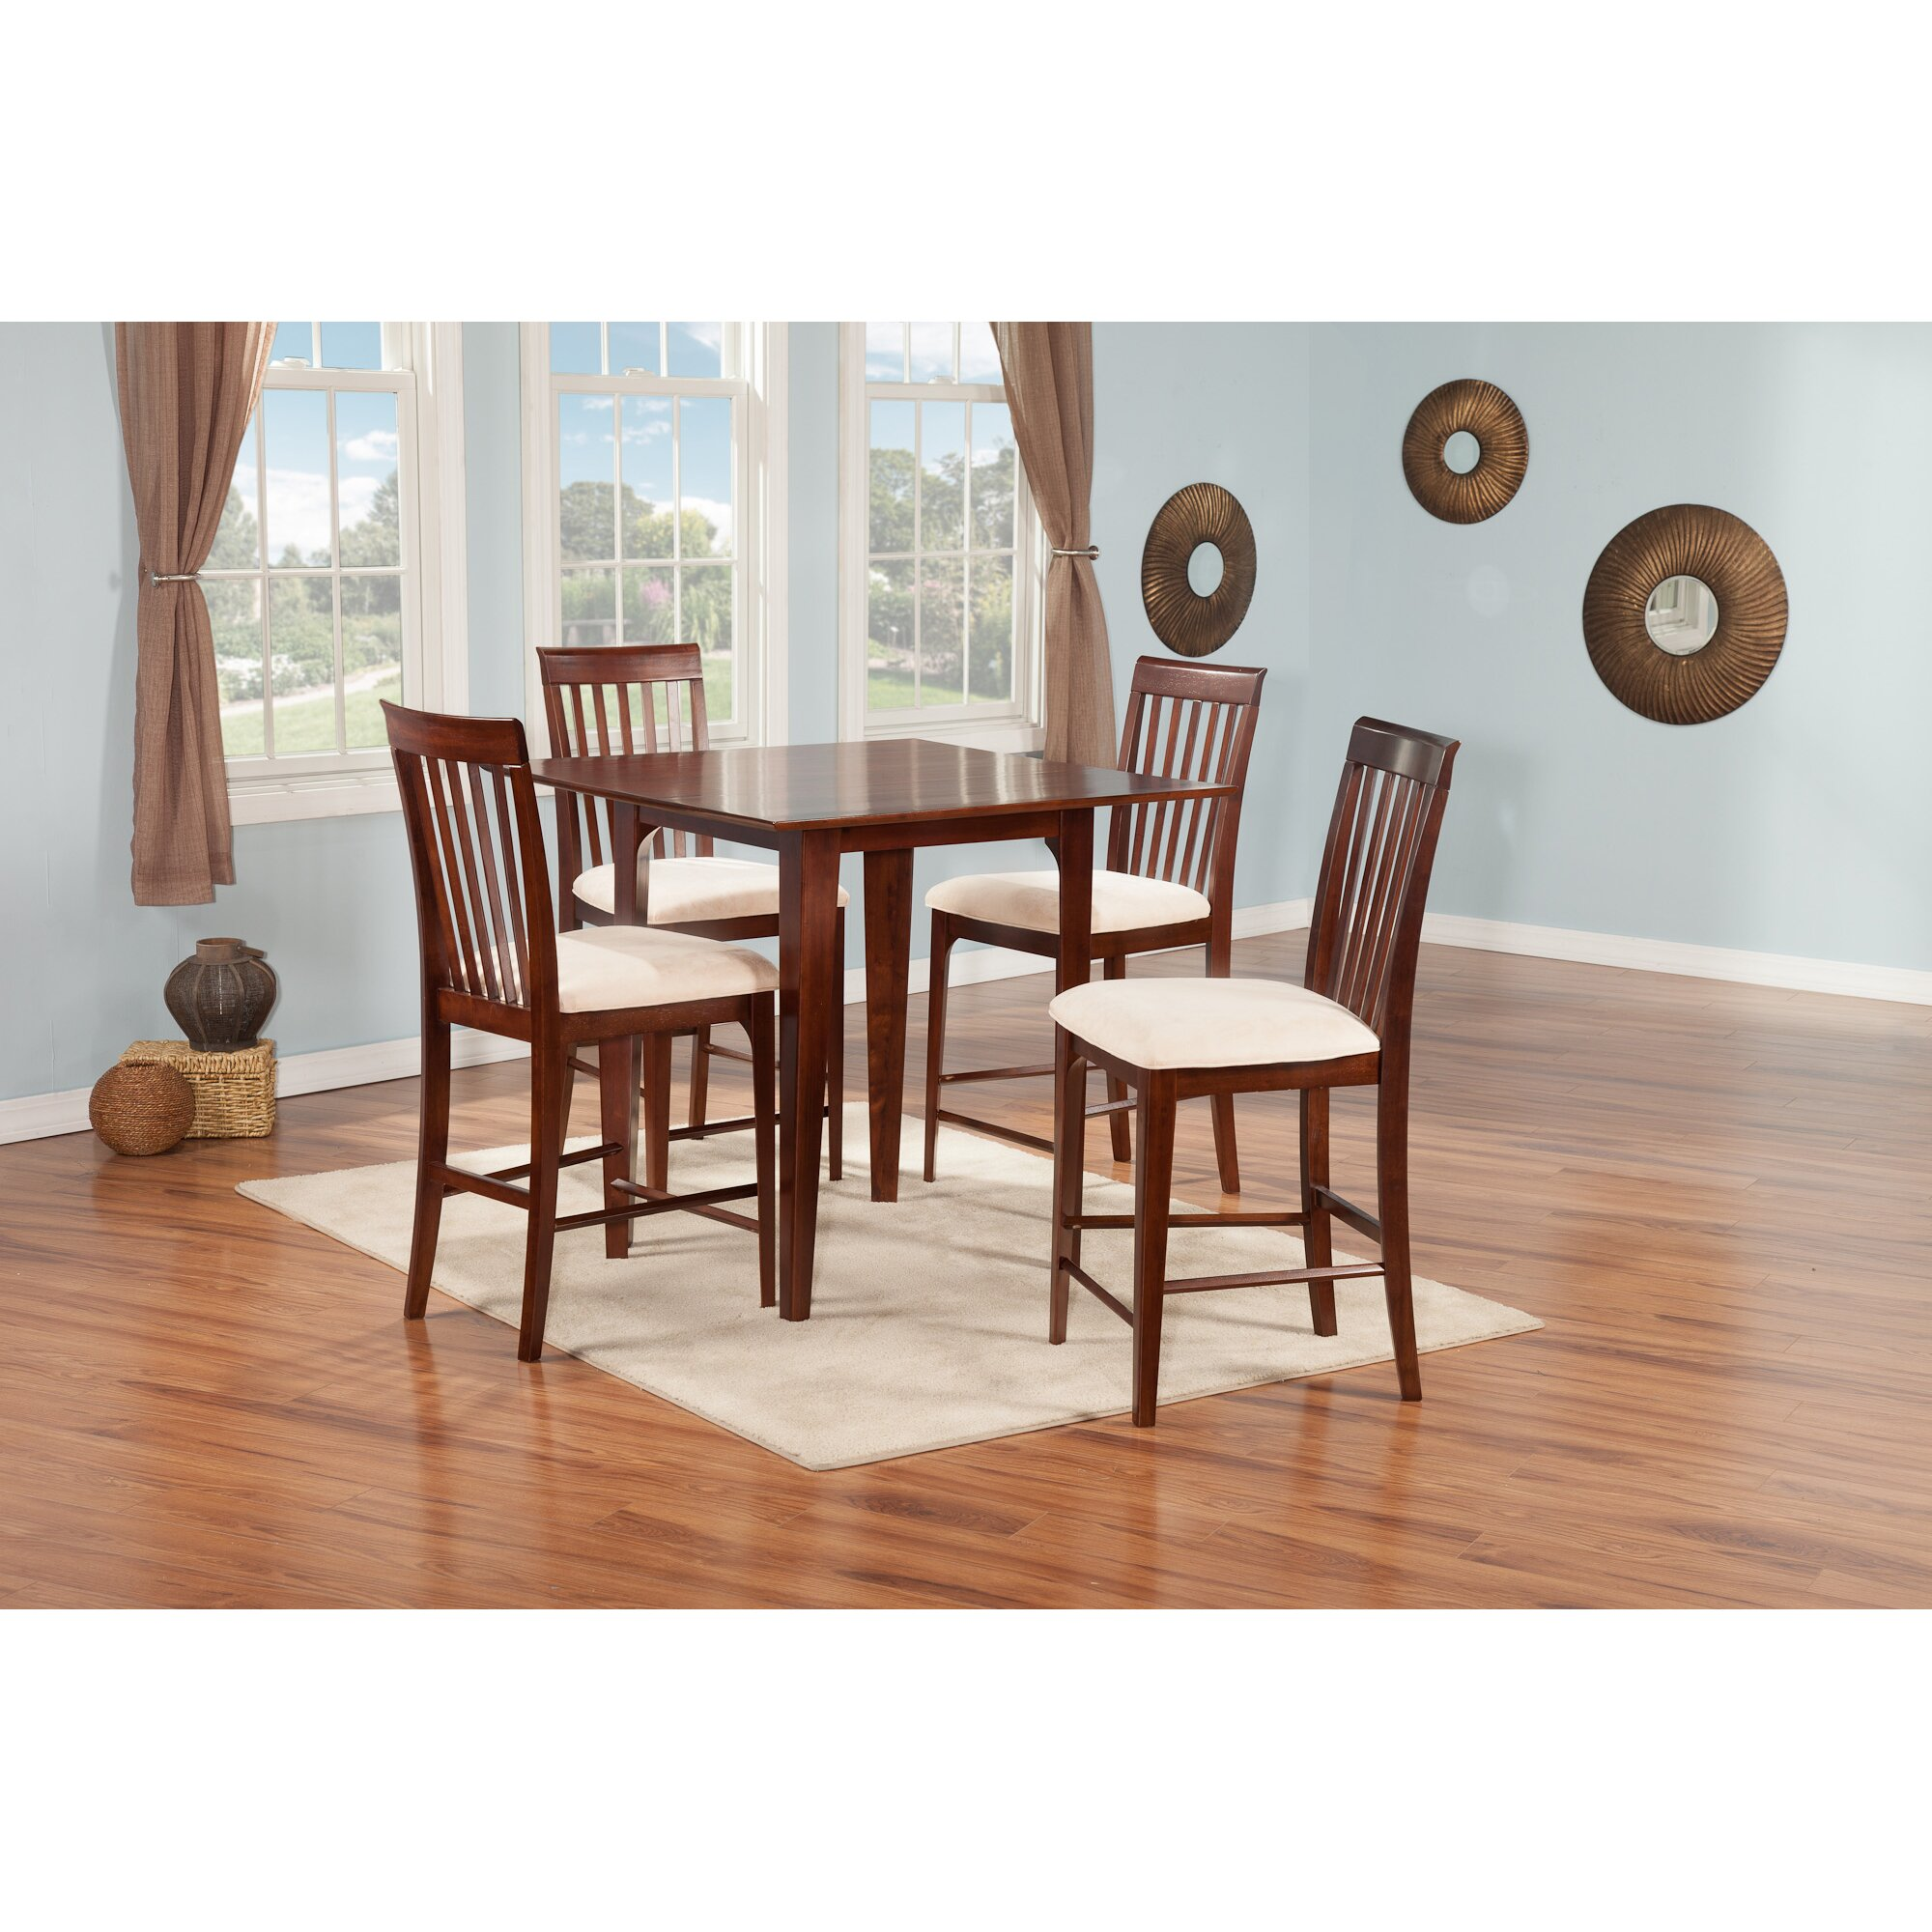 Large size of kitchen table and chairs high kitchen table for Ashley furniture montreal